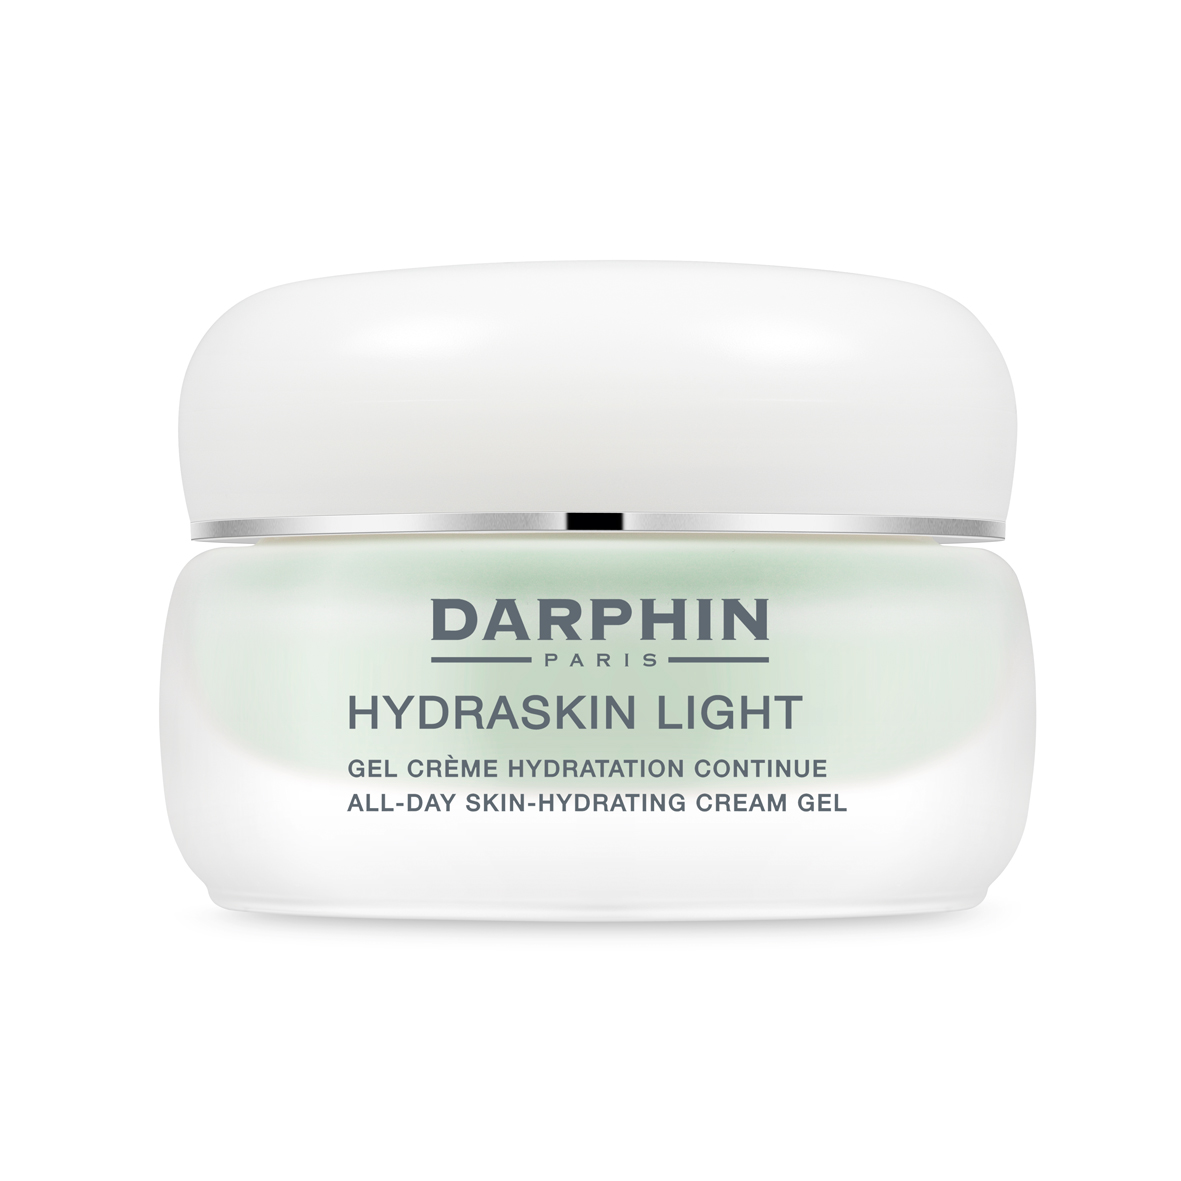 Hydraskin Light Cream Gel